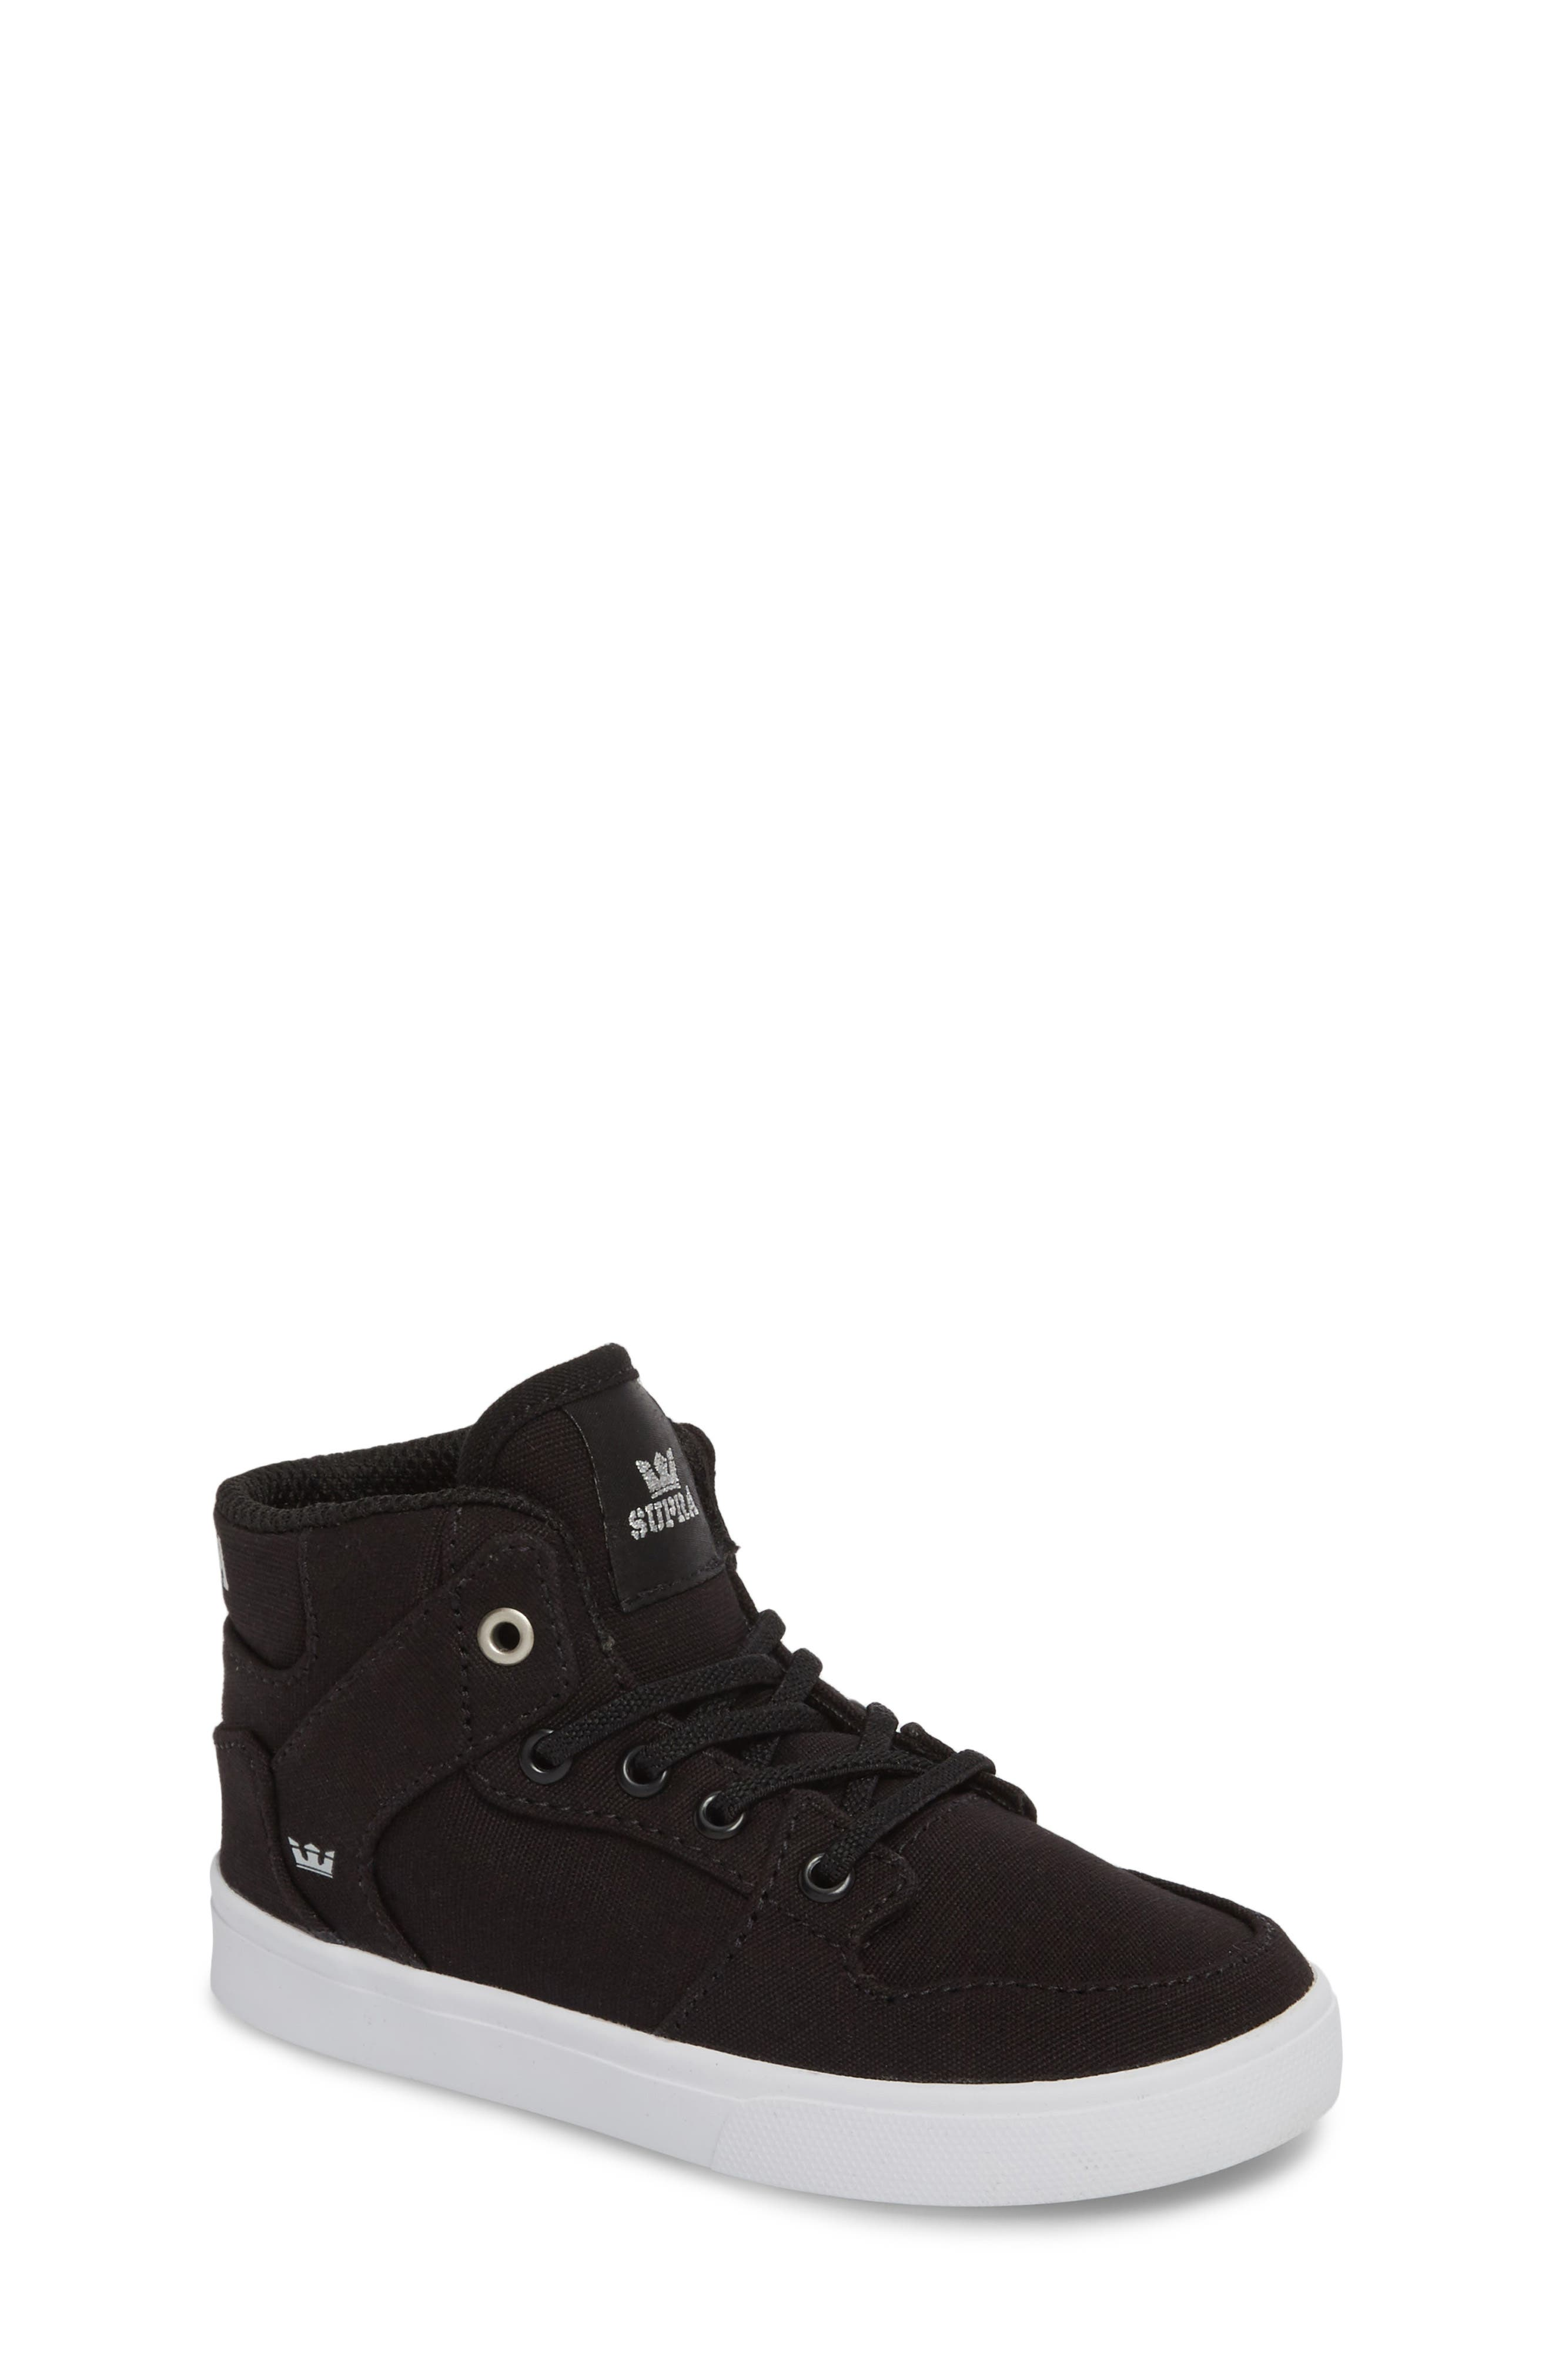 'Vaider' High Top Sneaker,                         Main,                         color, 001